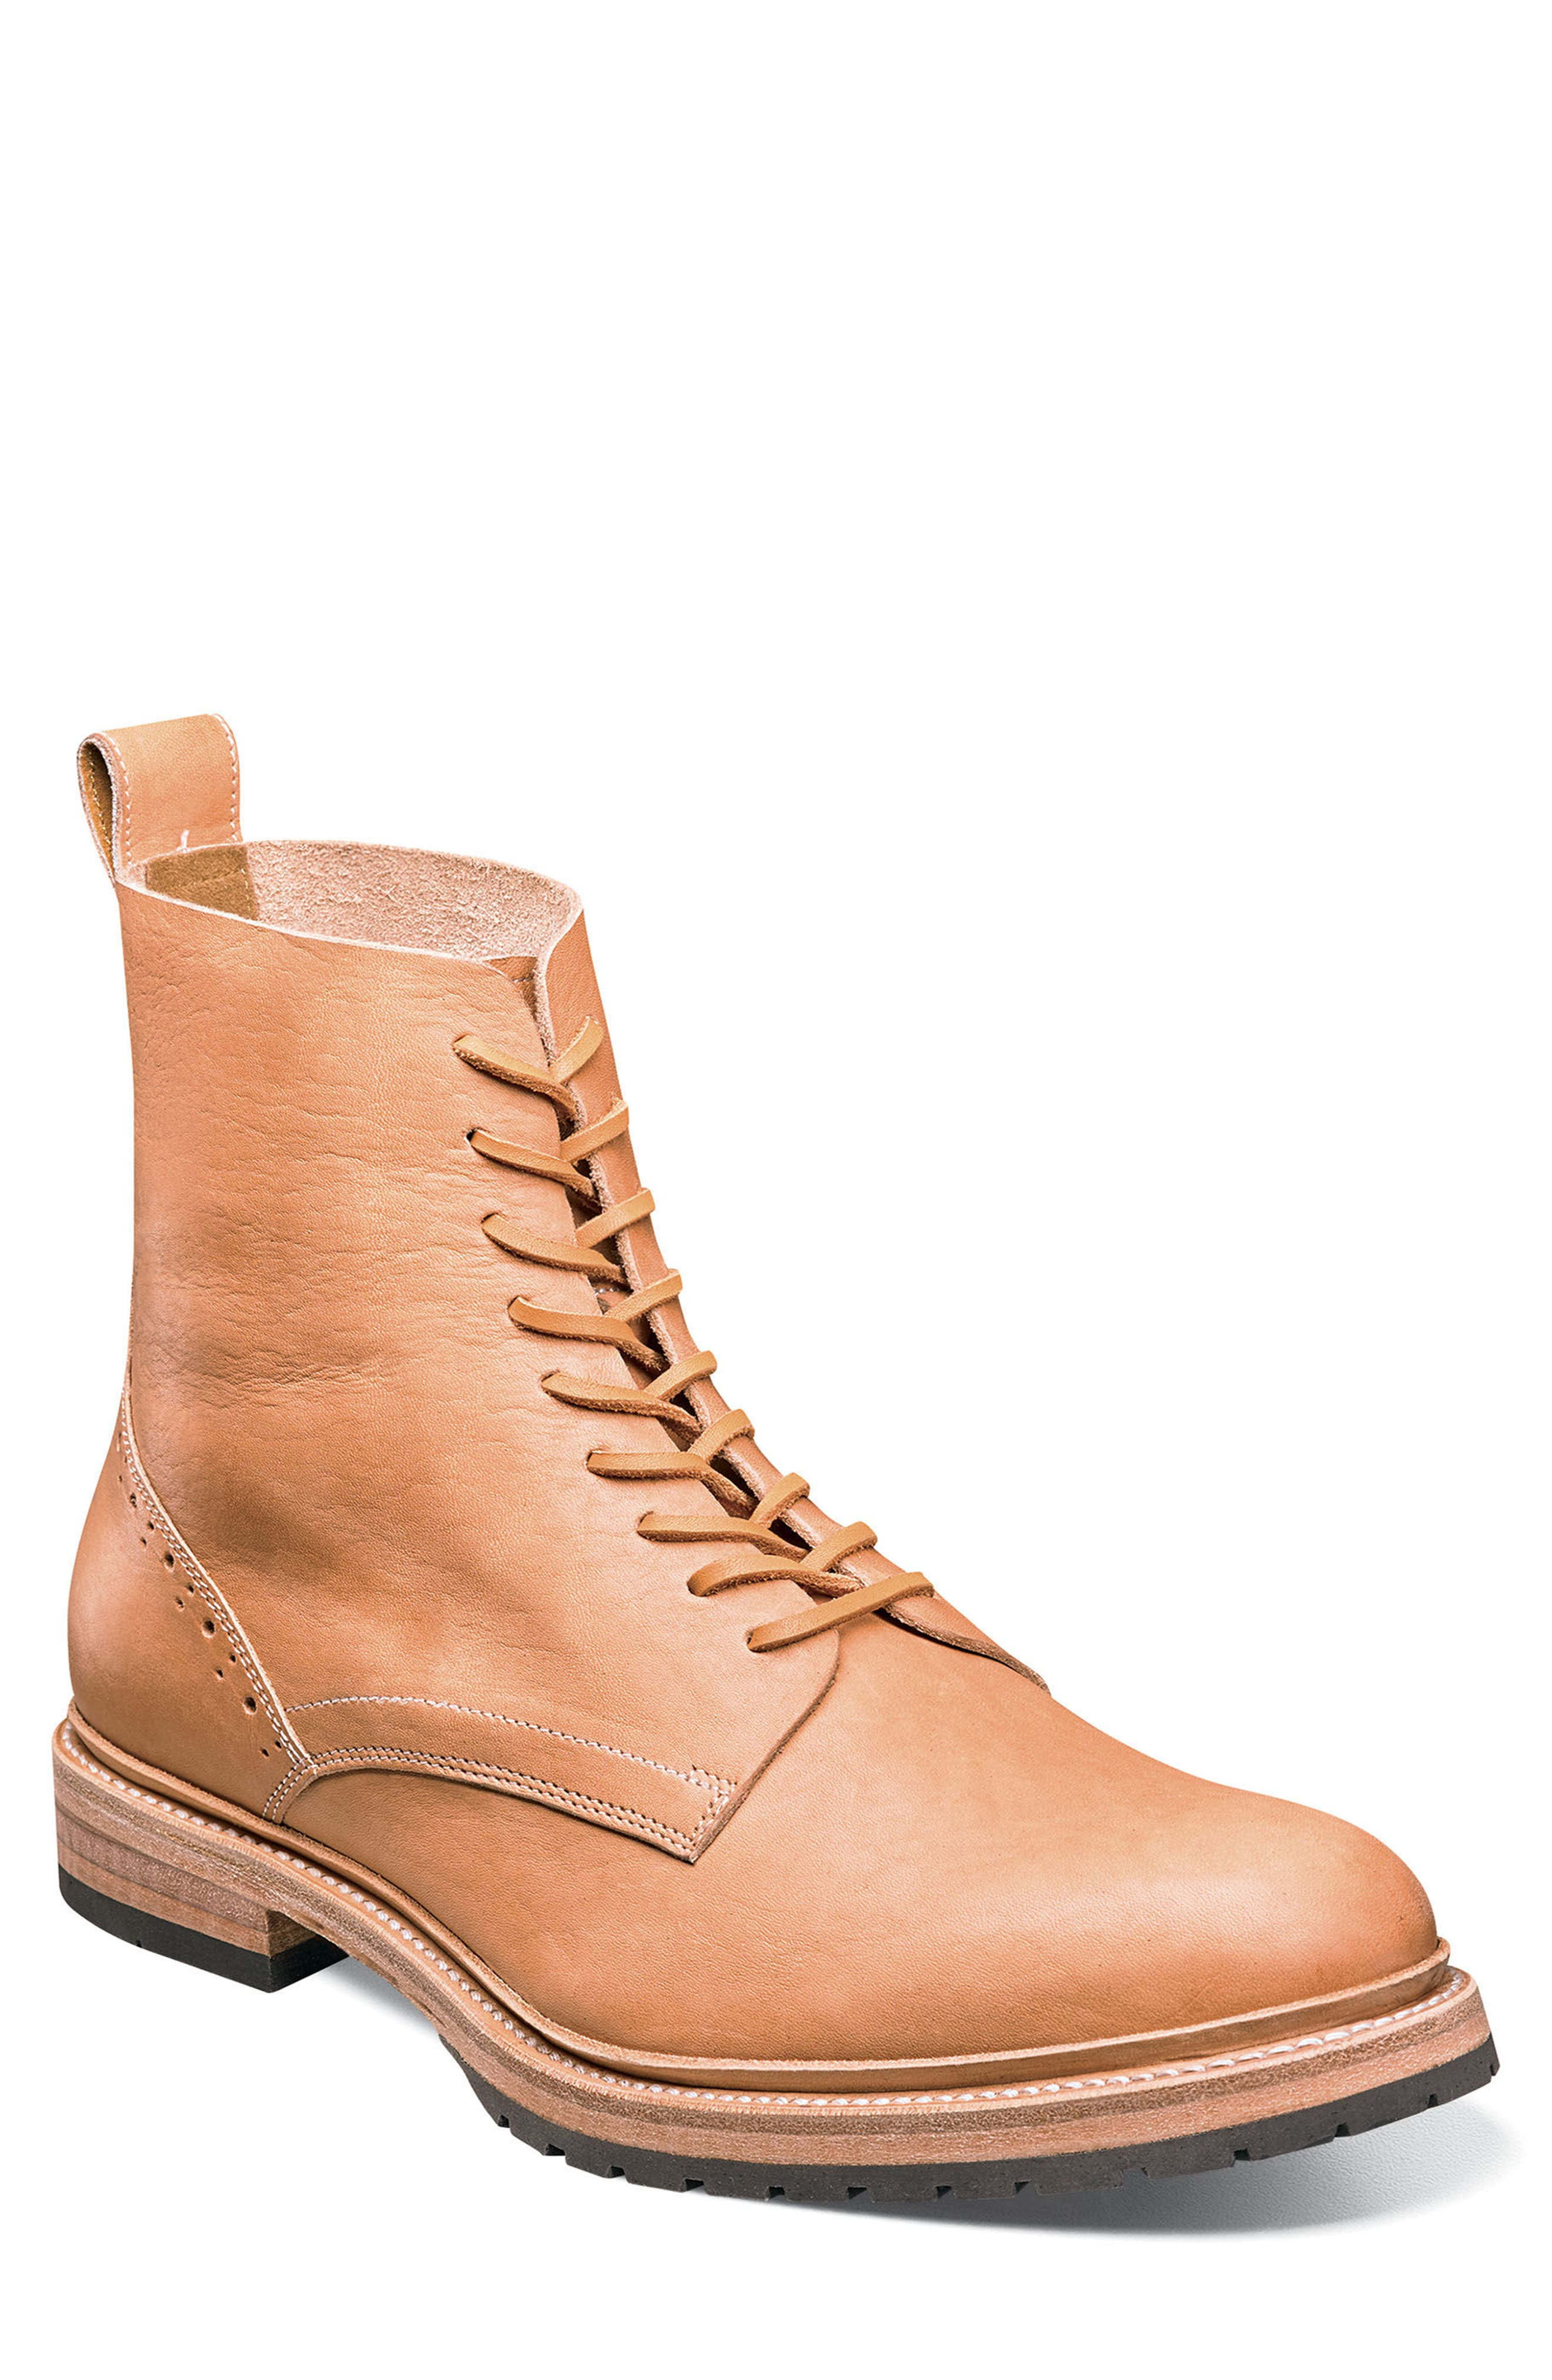 M2 Plain Toe Boot,                         Main,                         color, NATURAL LEATHER